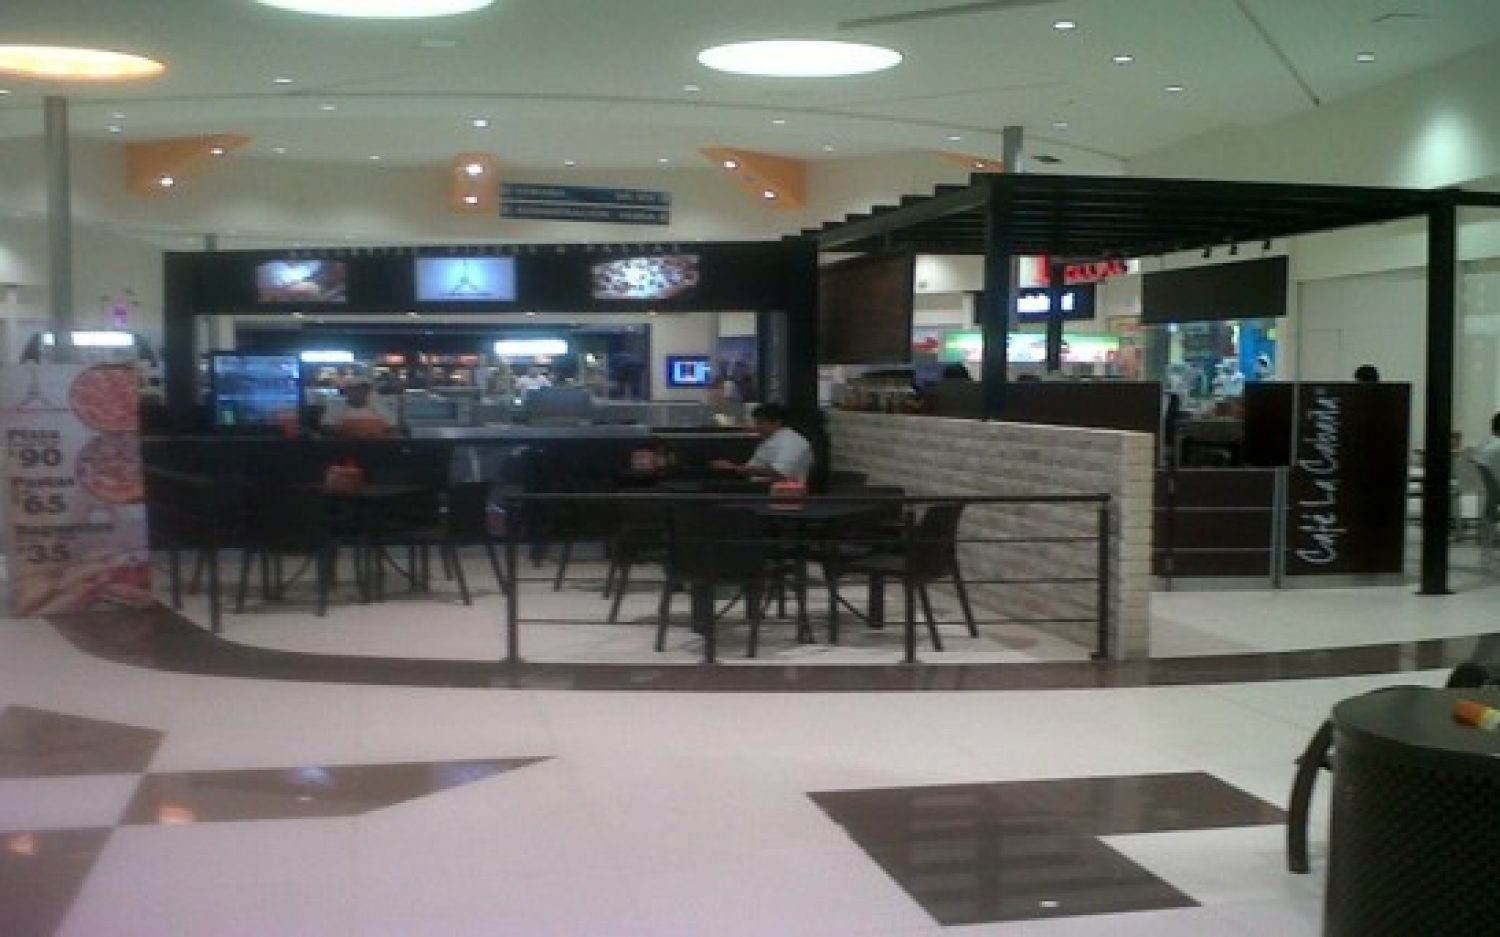 Co-Plaza Sendero Villahermosa (56)